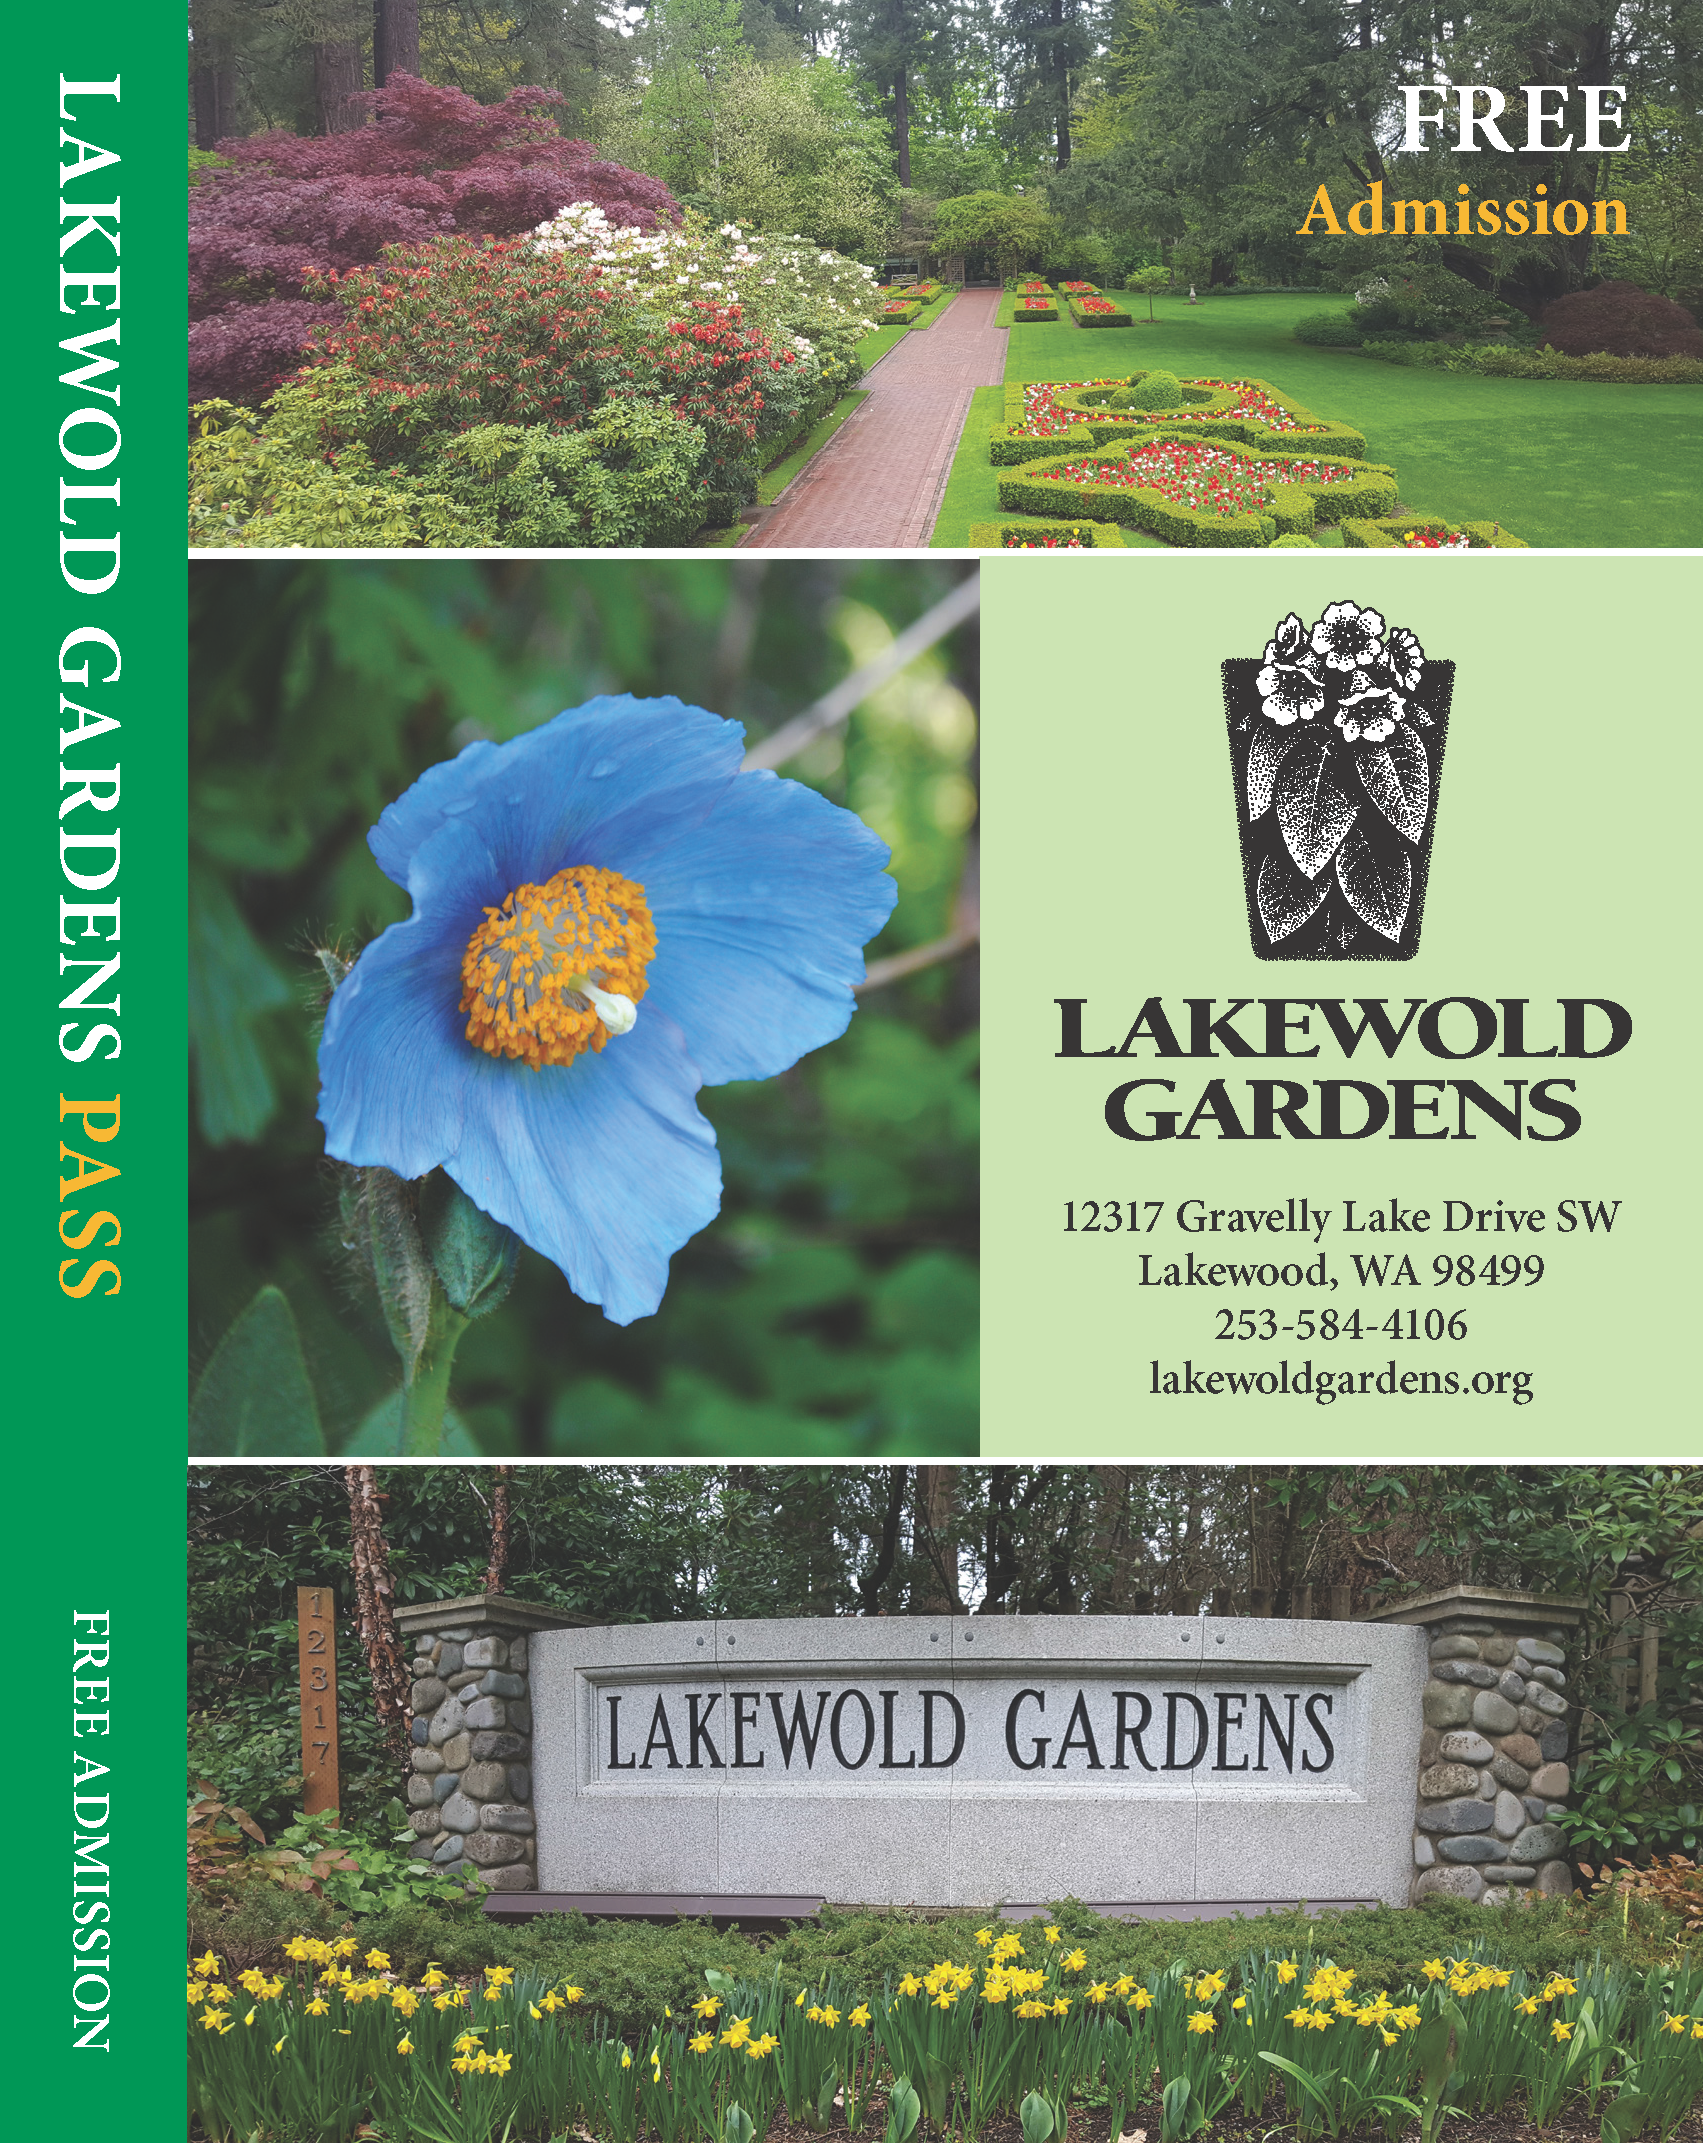 Lakewold Gardens